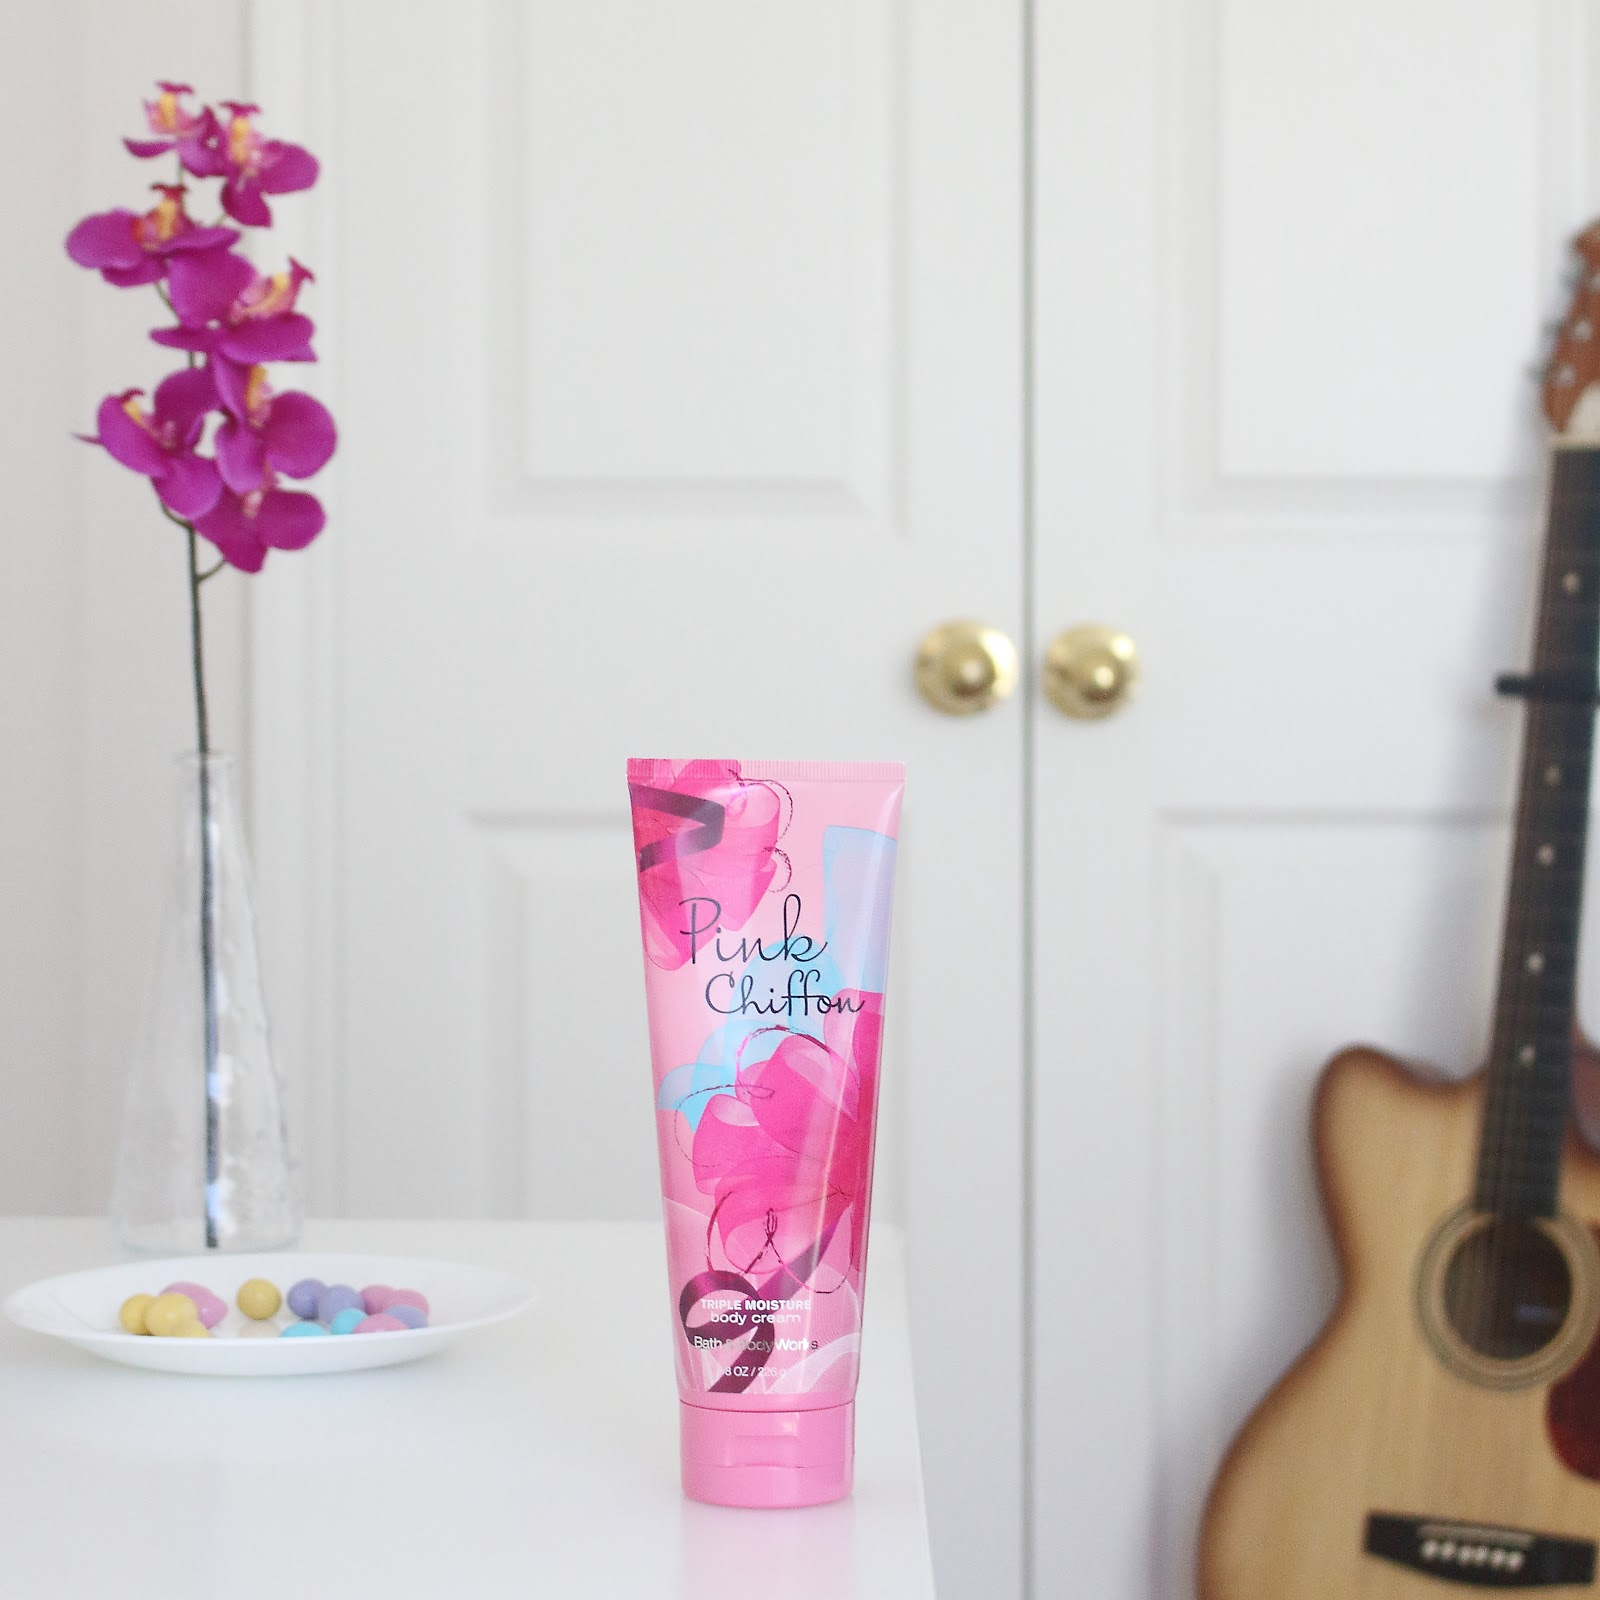 Bath and Body Works Pink Chiffon Triple Moisture Body Cream Product Review